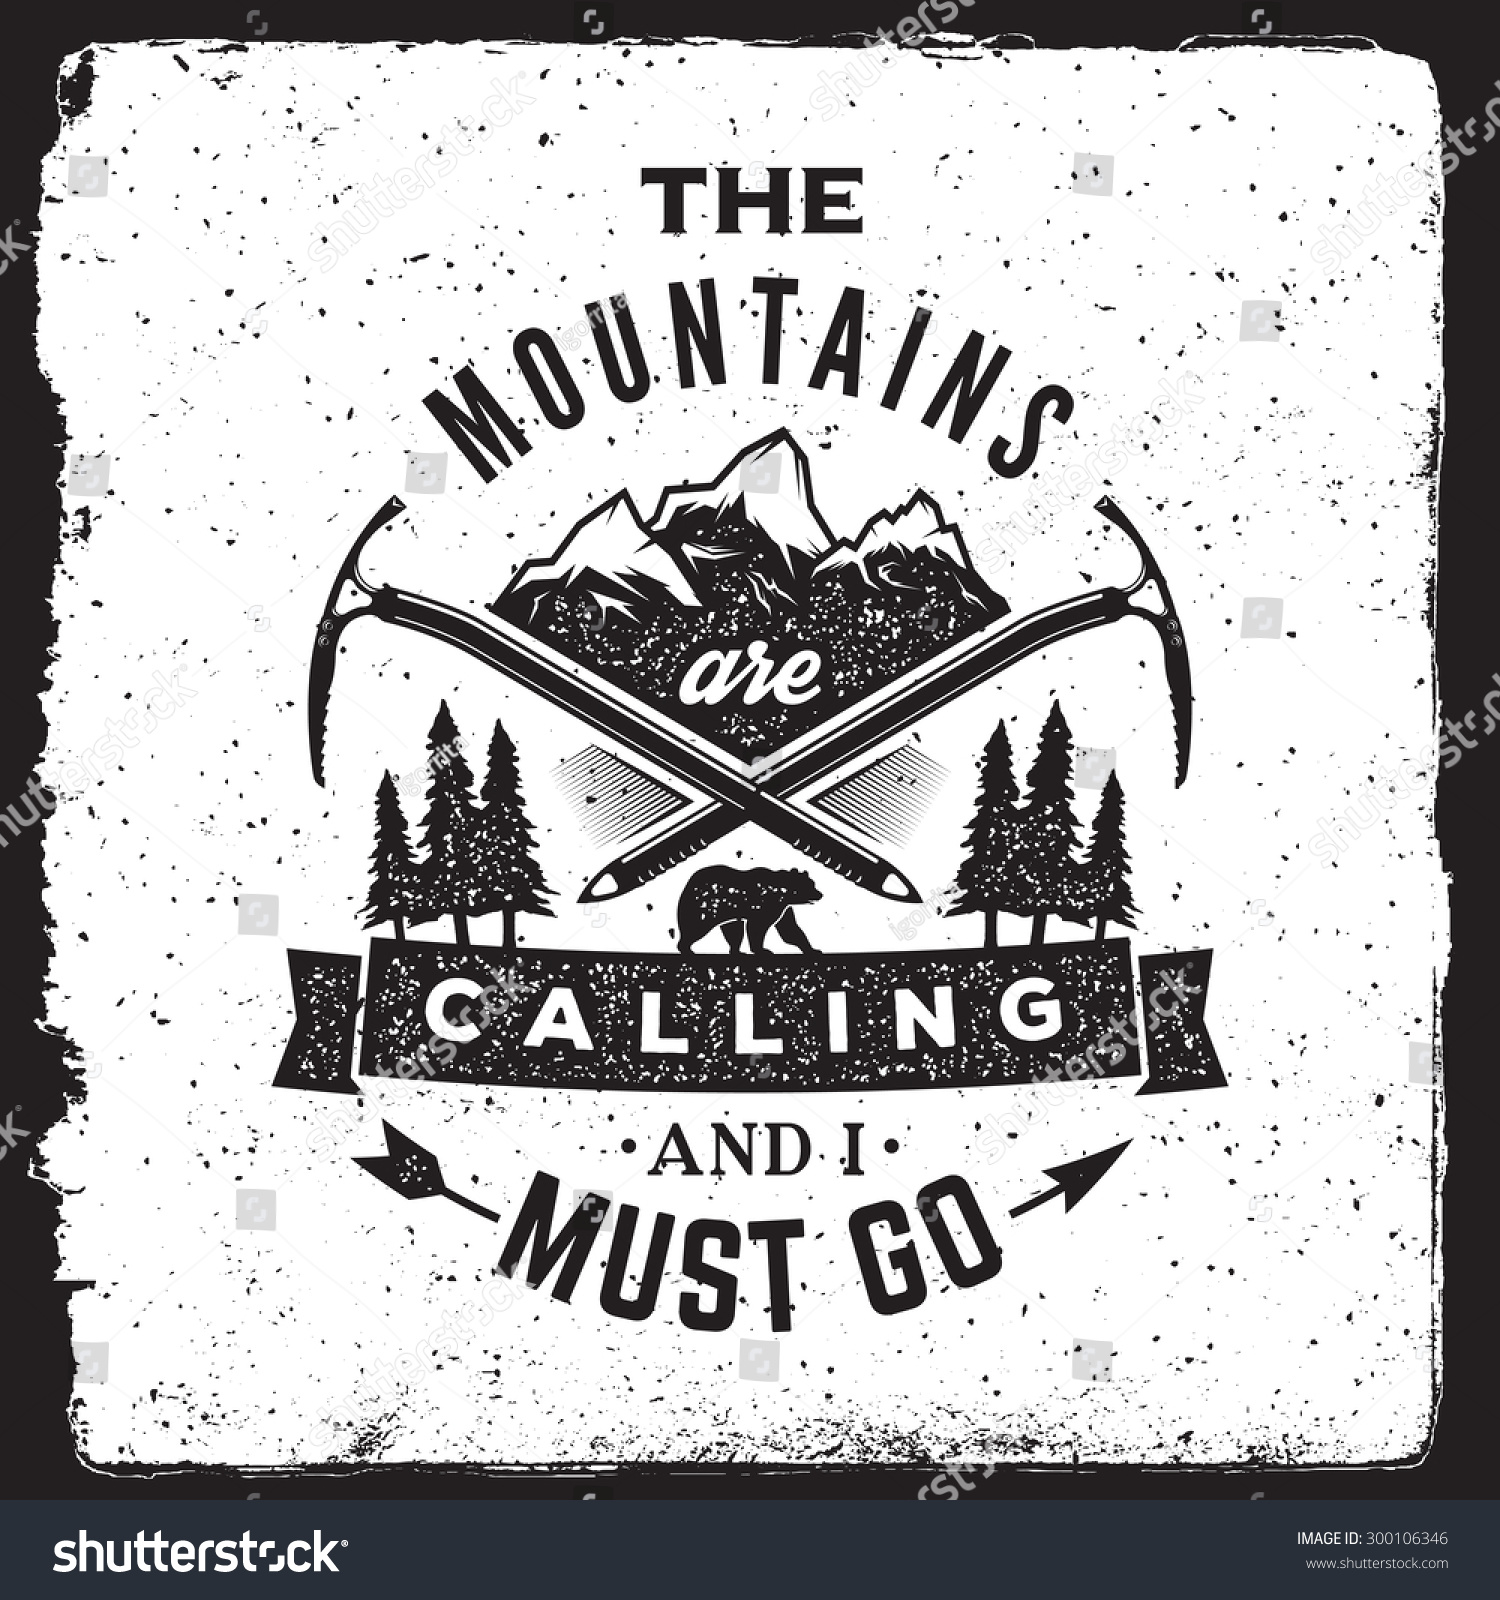 Wilderness and nature exploration vintage poster the for The mountains are calling and i must go metal sign